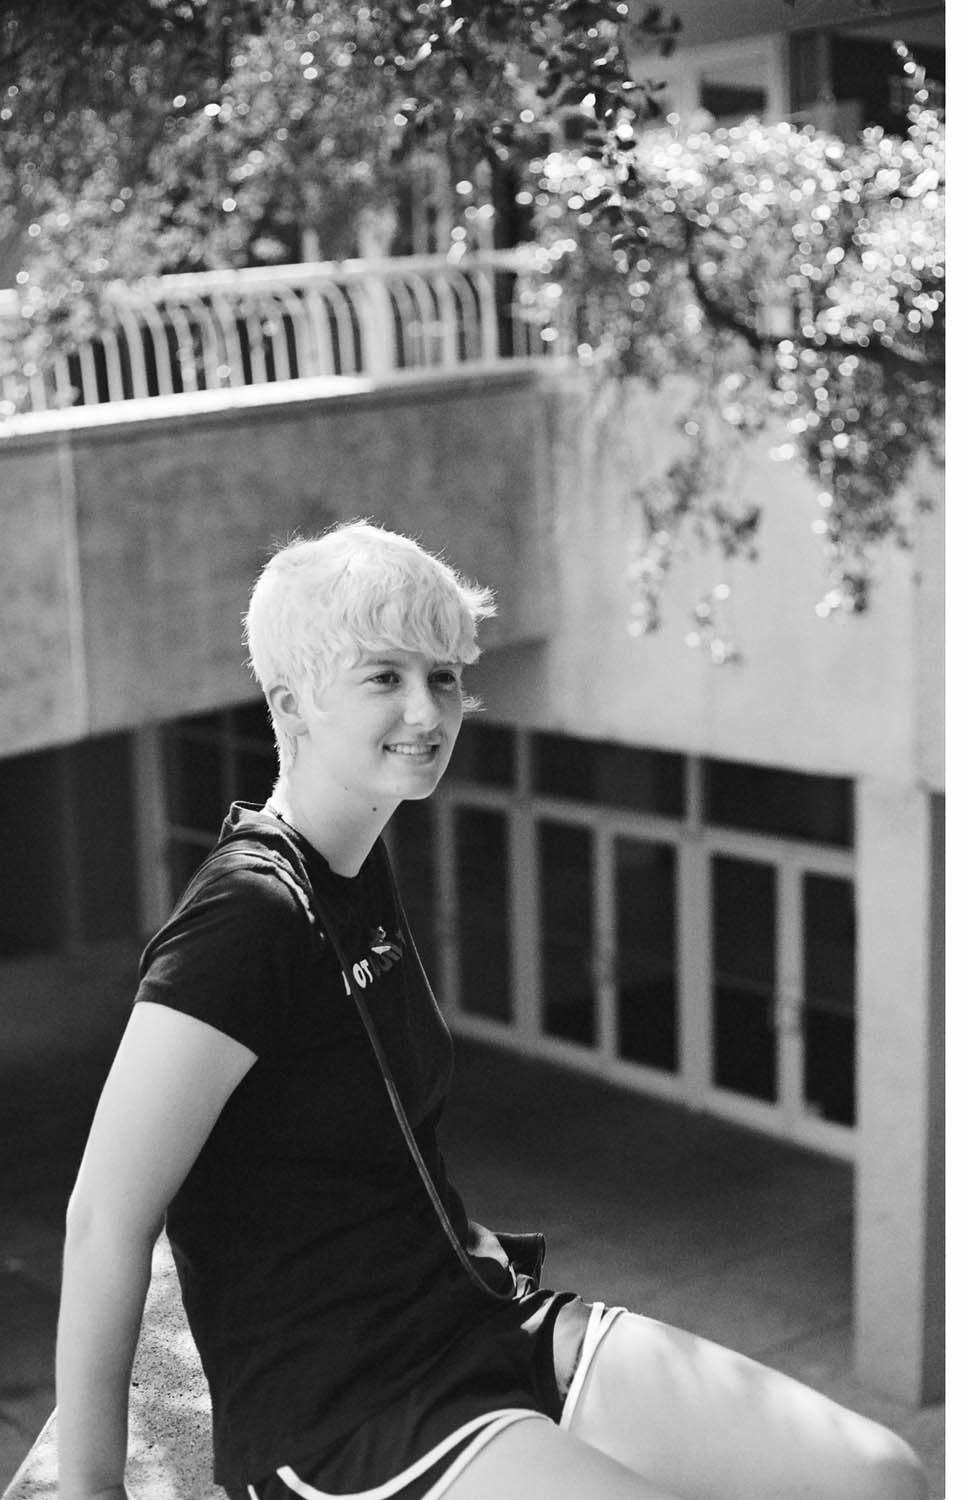 A portrait of a friend. Shot at 320 to prevent underexposure, developed at 400 by the Darkroom.